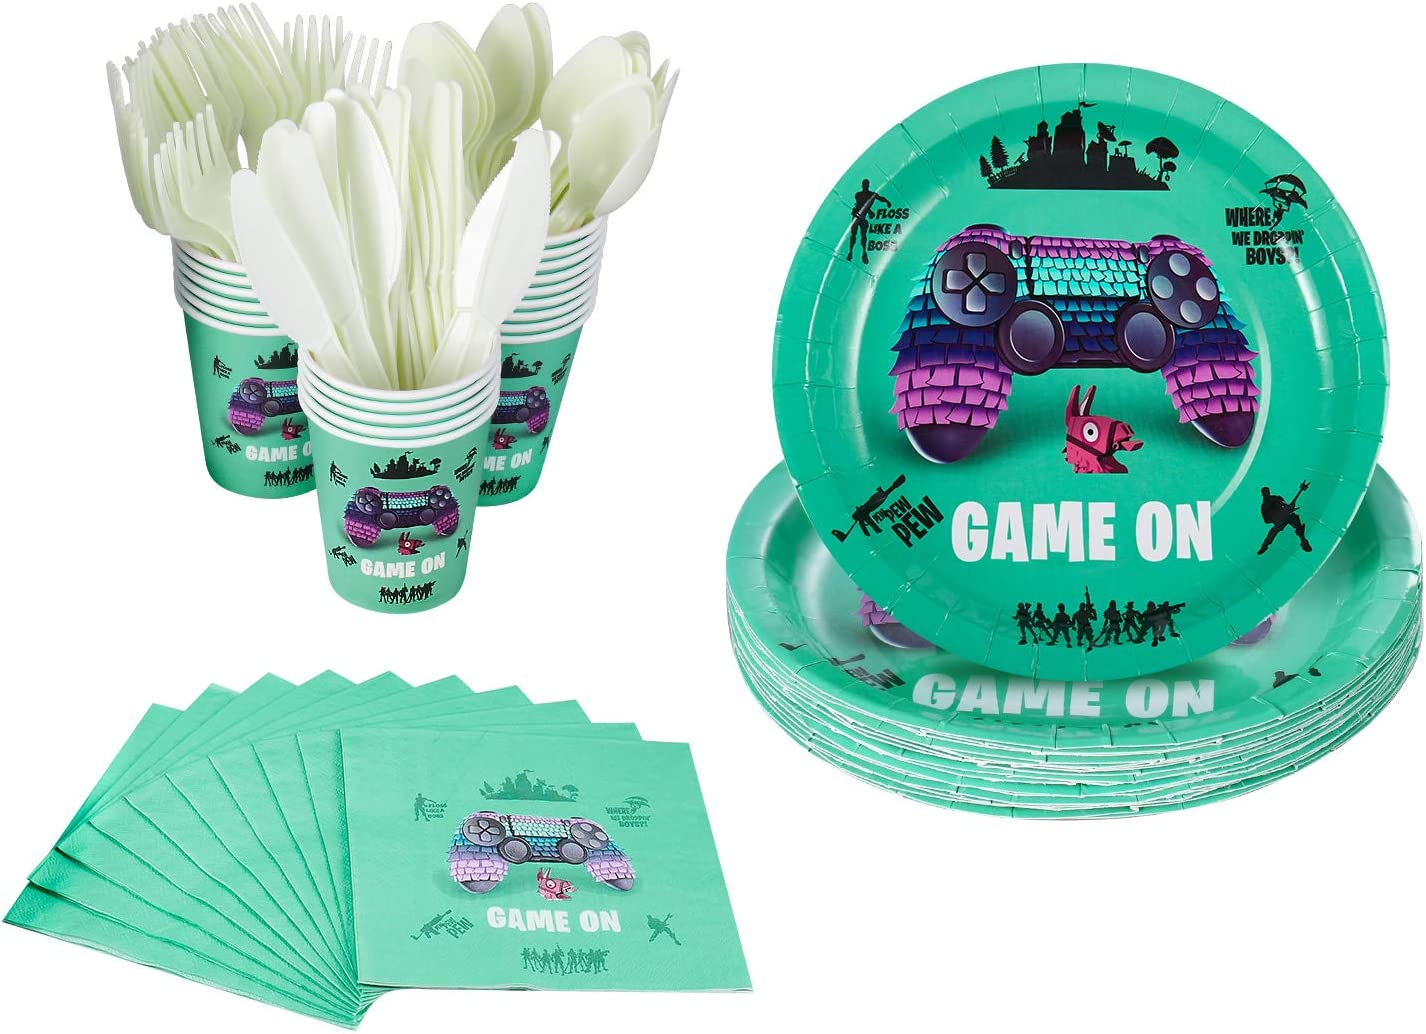 120 Pcs Video Game Party Supplies – Serves 20 – Includes Plates, Knives, Spoons, Forks, Cups and Napkins for Birthday Party Pack for Kids Video Game Themed Party